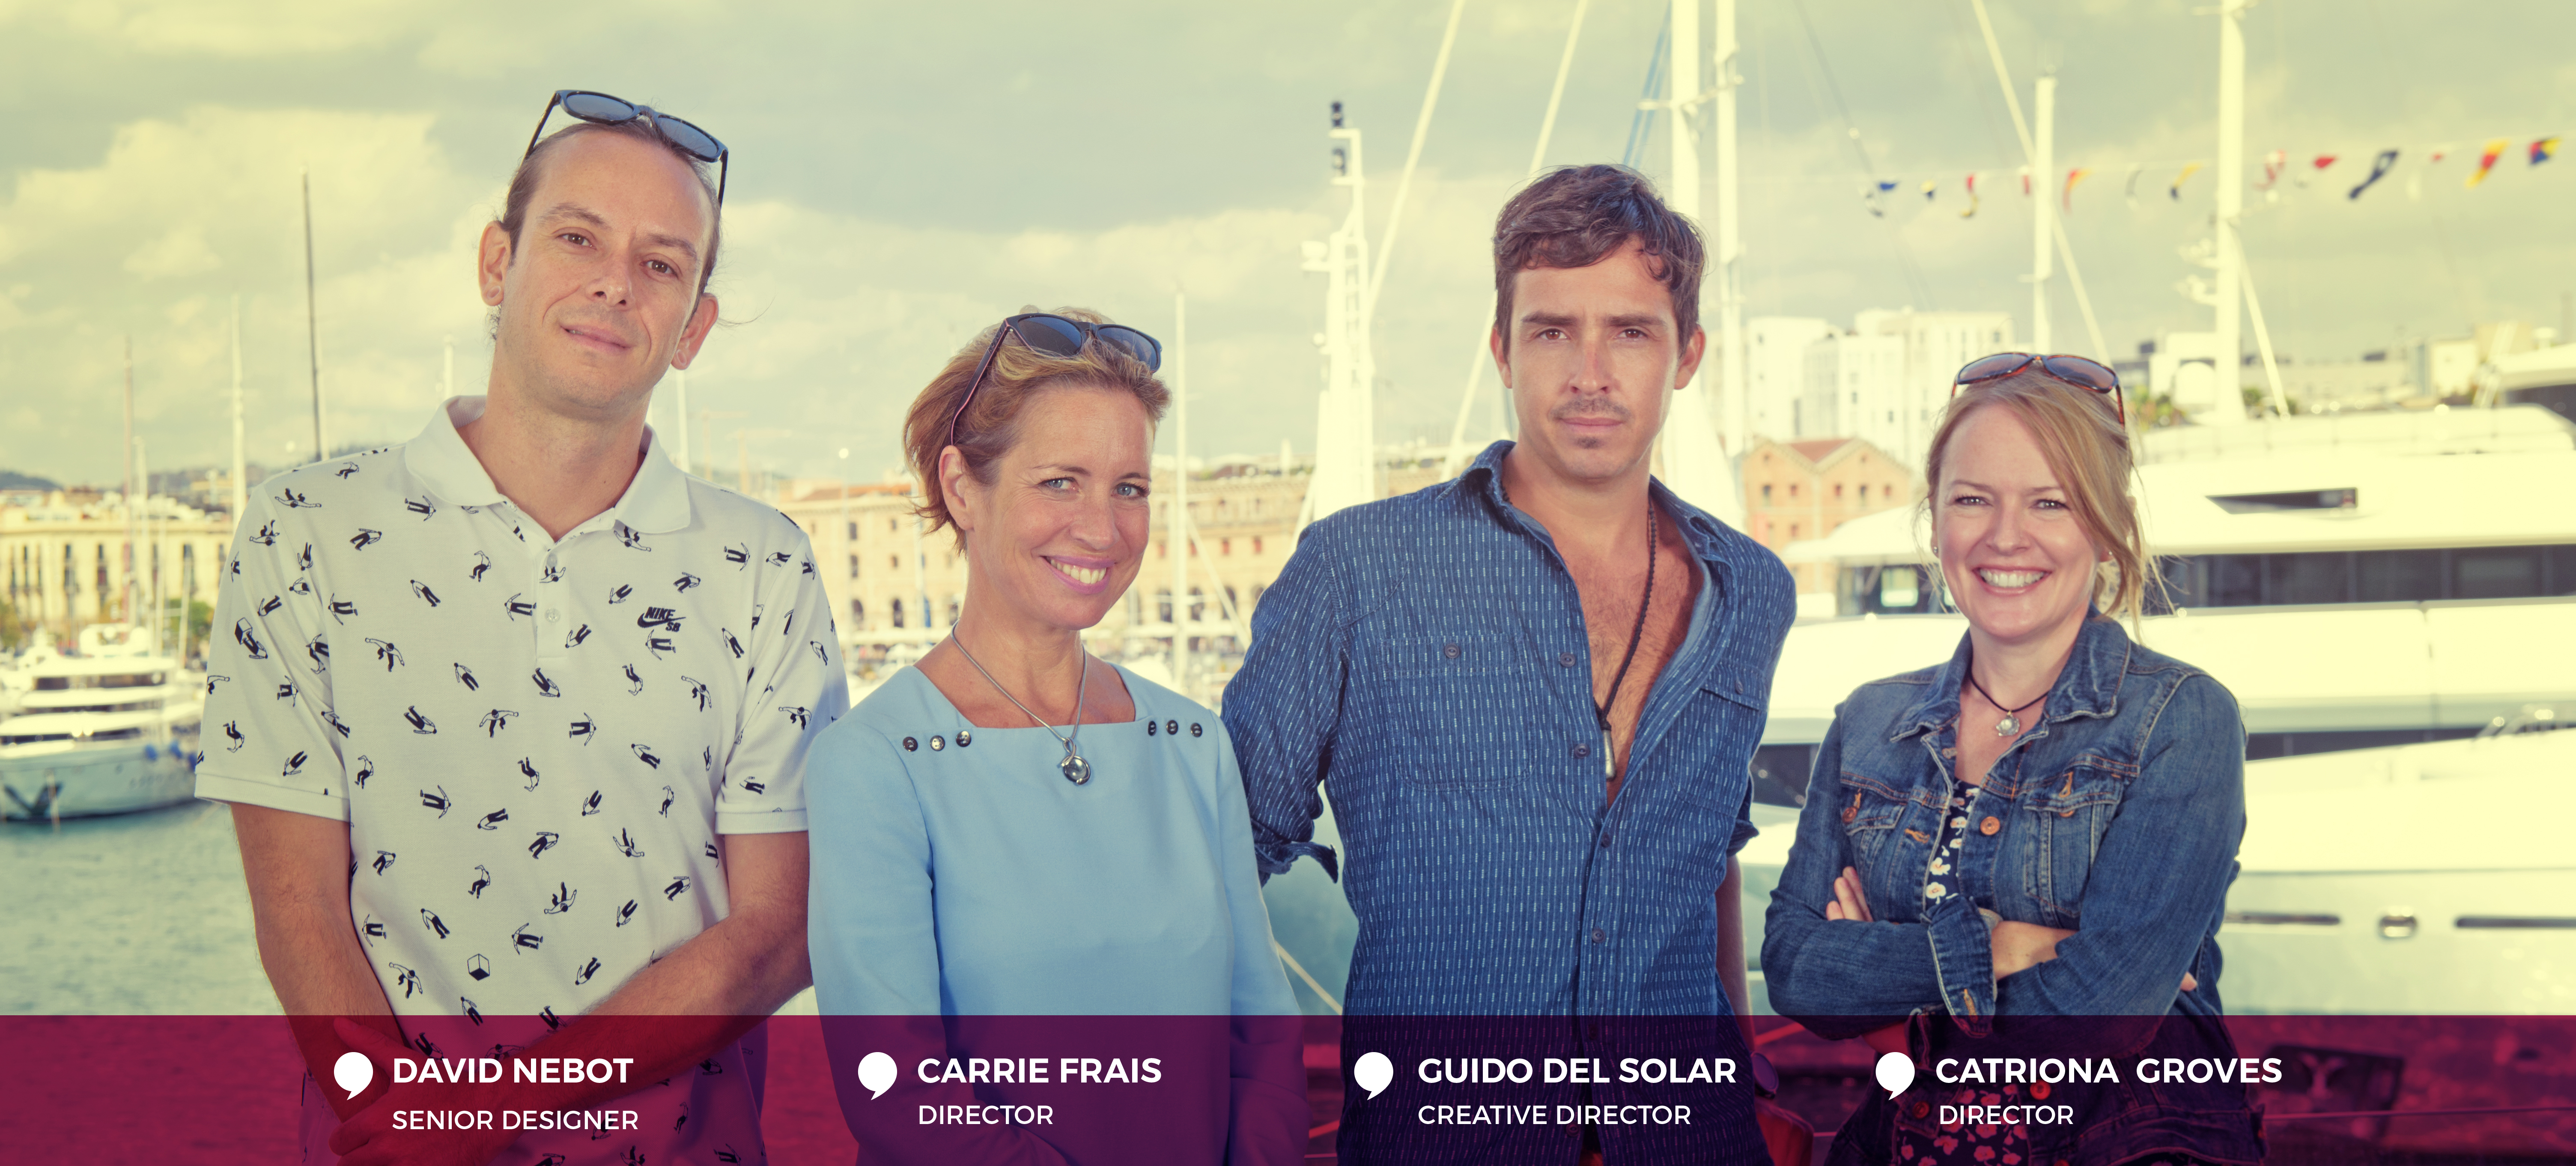 Team FiG Barcelona, David Nebot, Carrie Frais, Guido del Solar, Catriona Groves